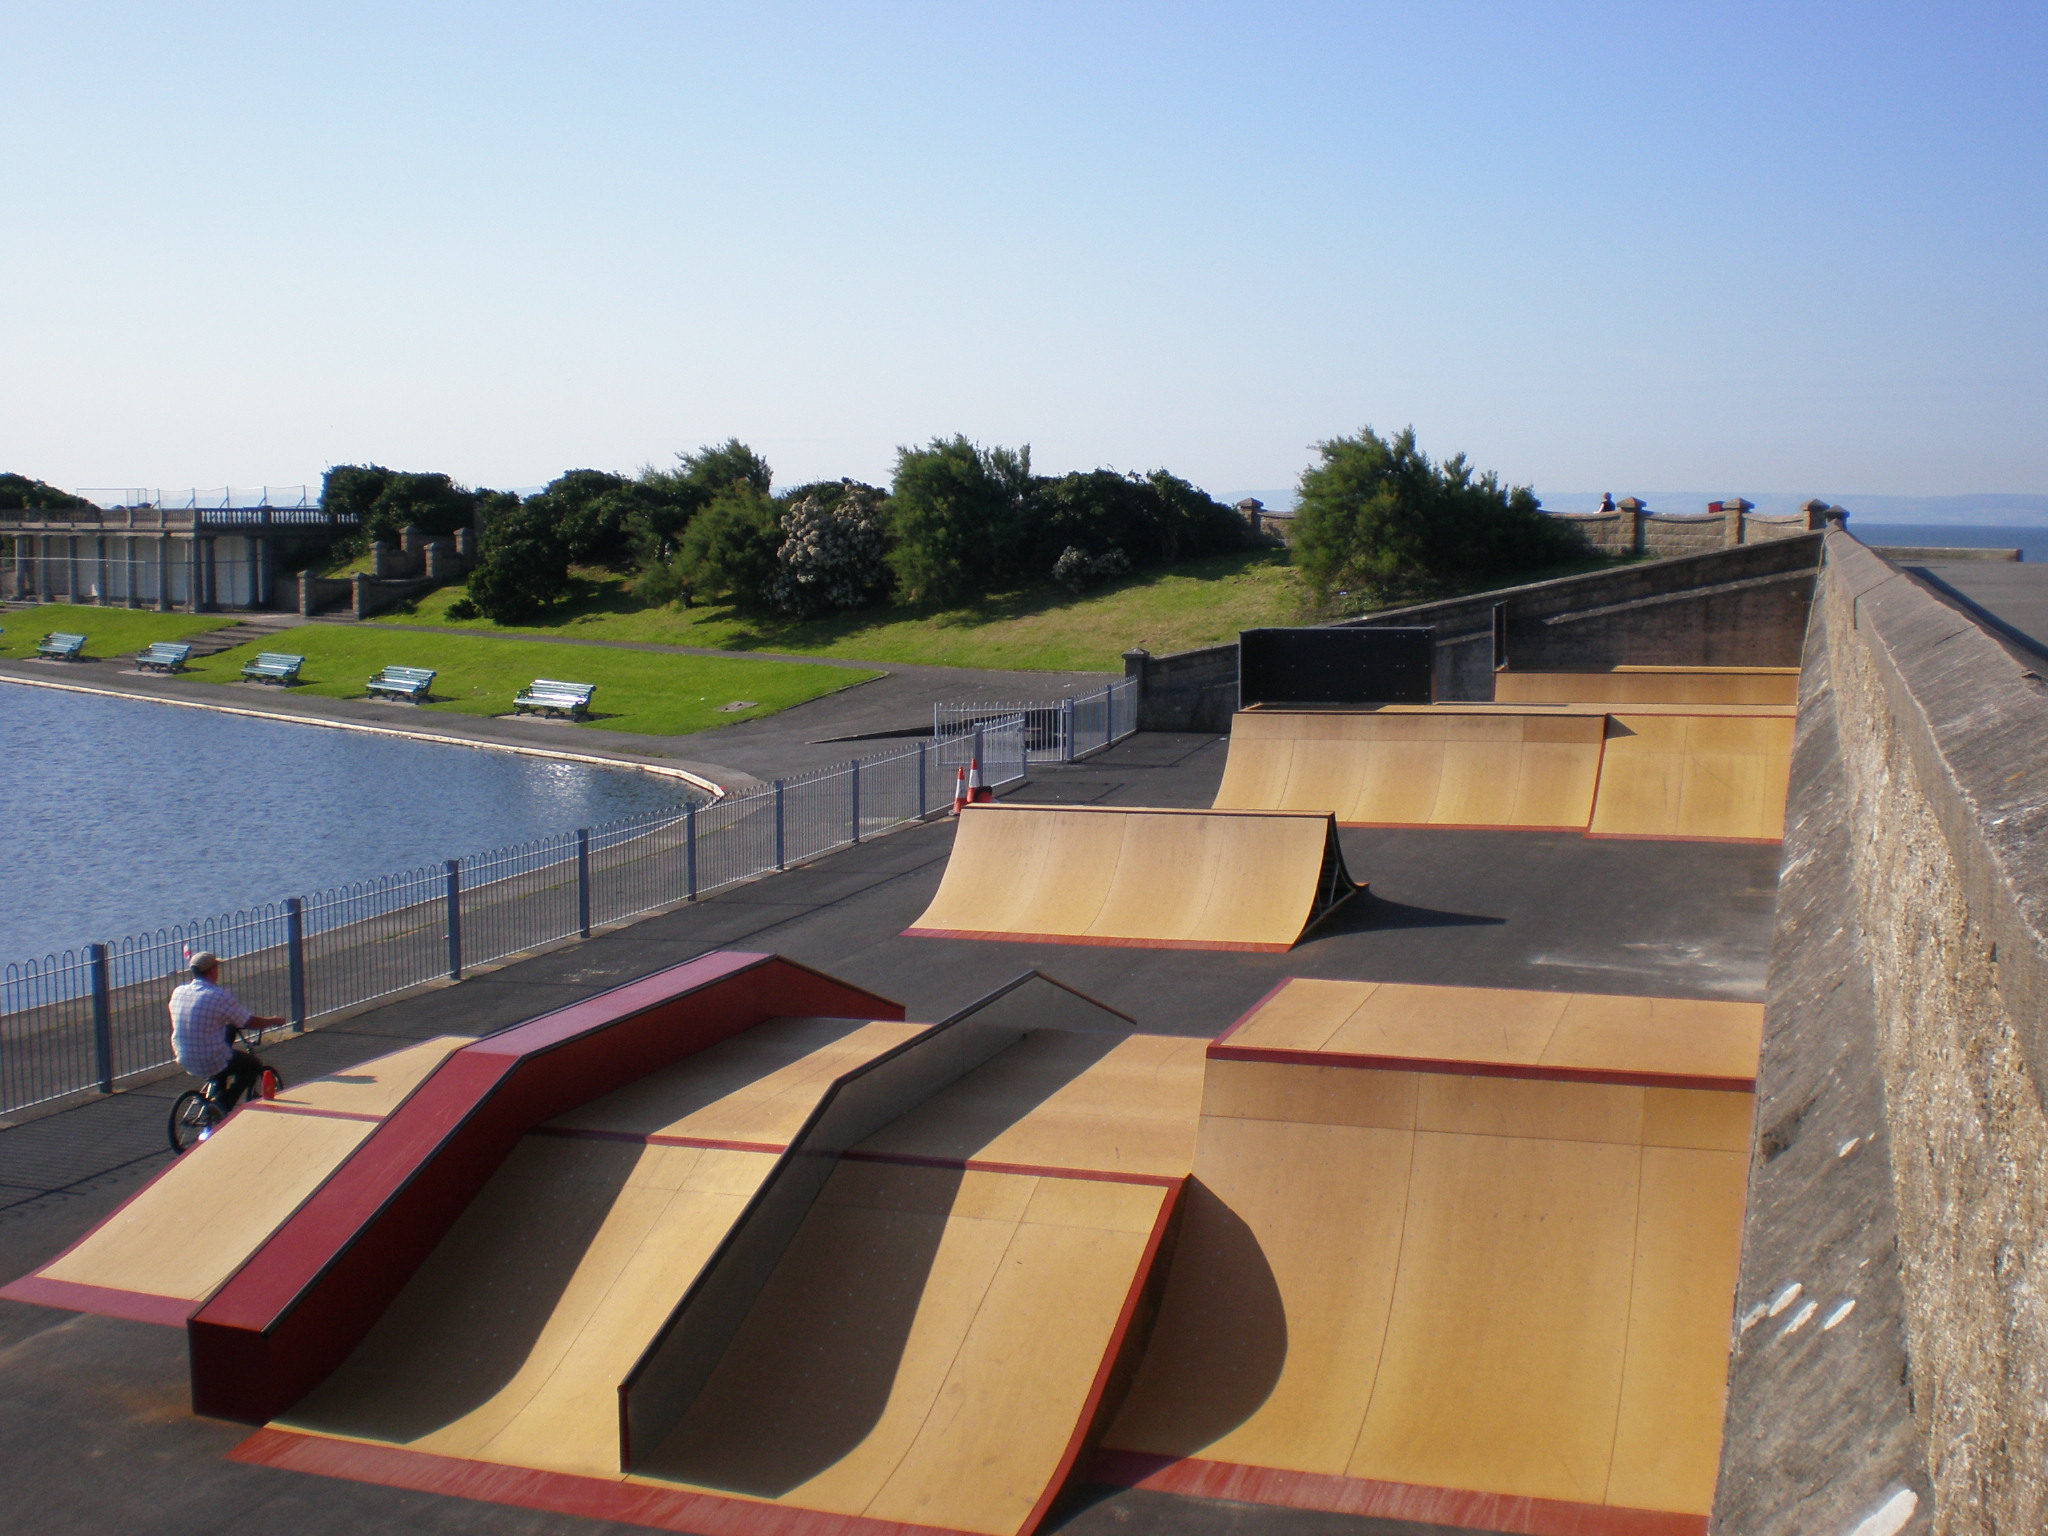 Richard Taylor Memorial Skatepark